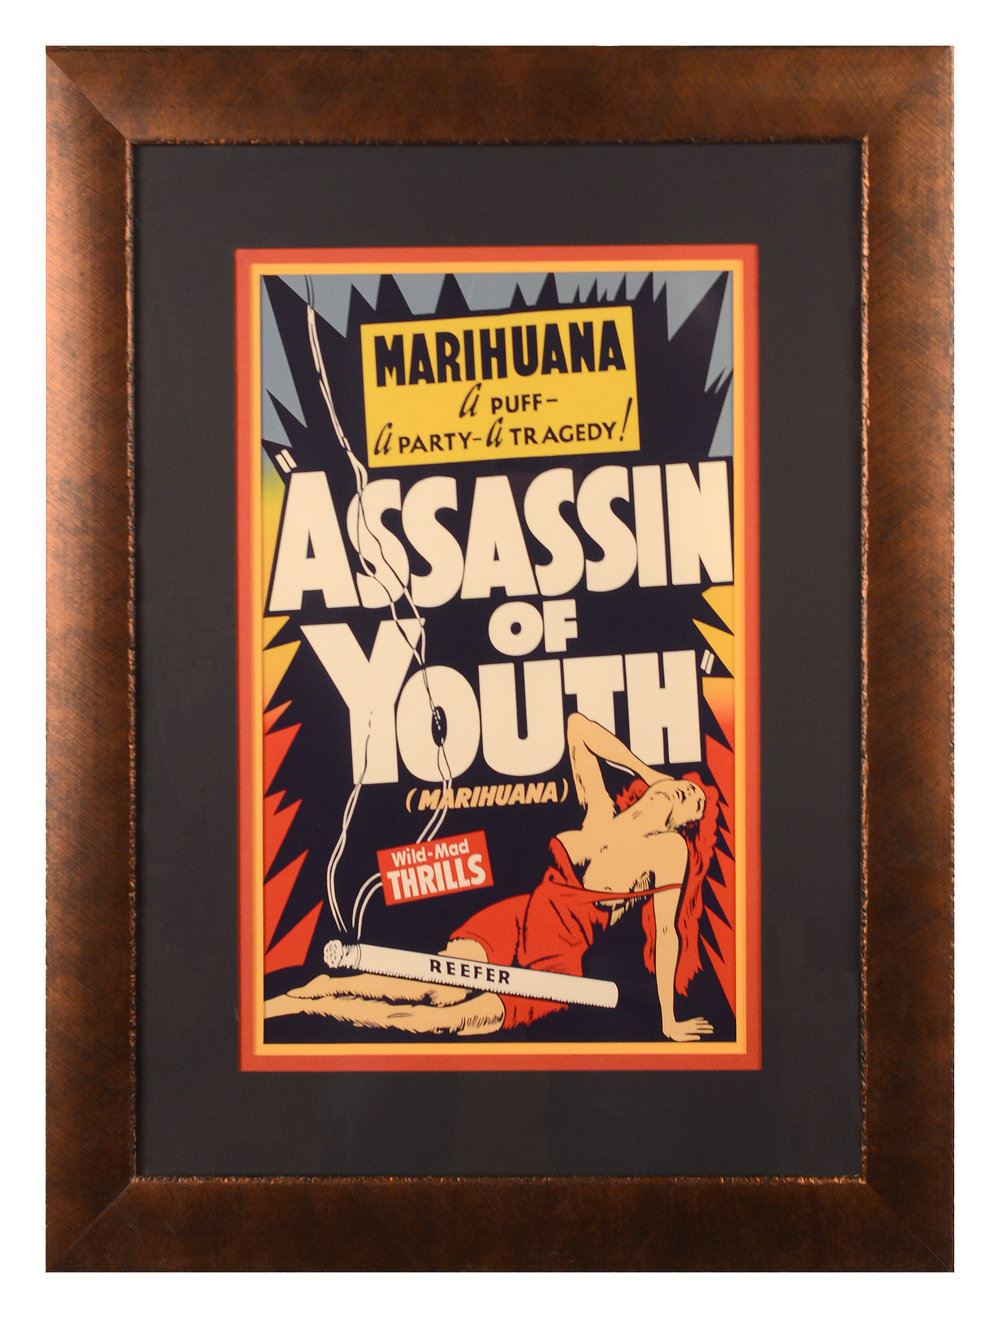 Assassin of Youth Poster 6282.jpg